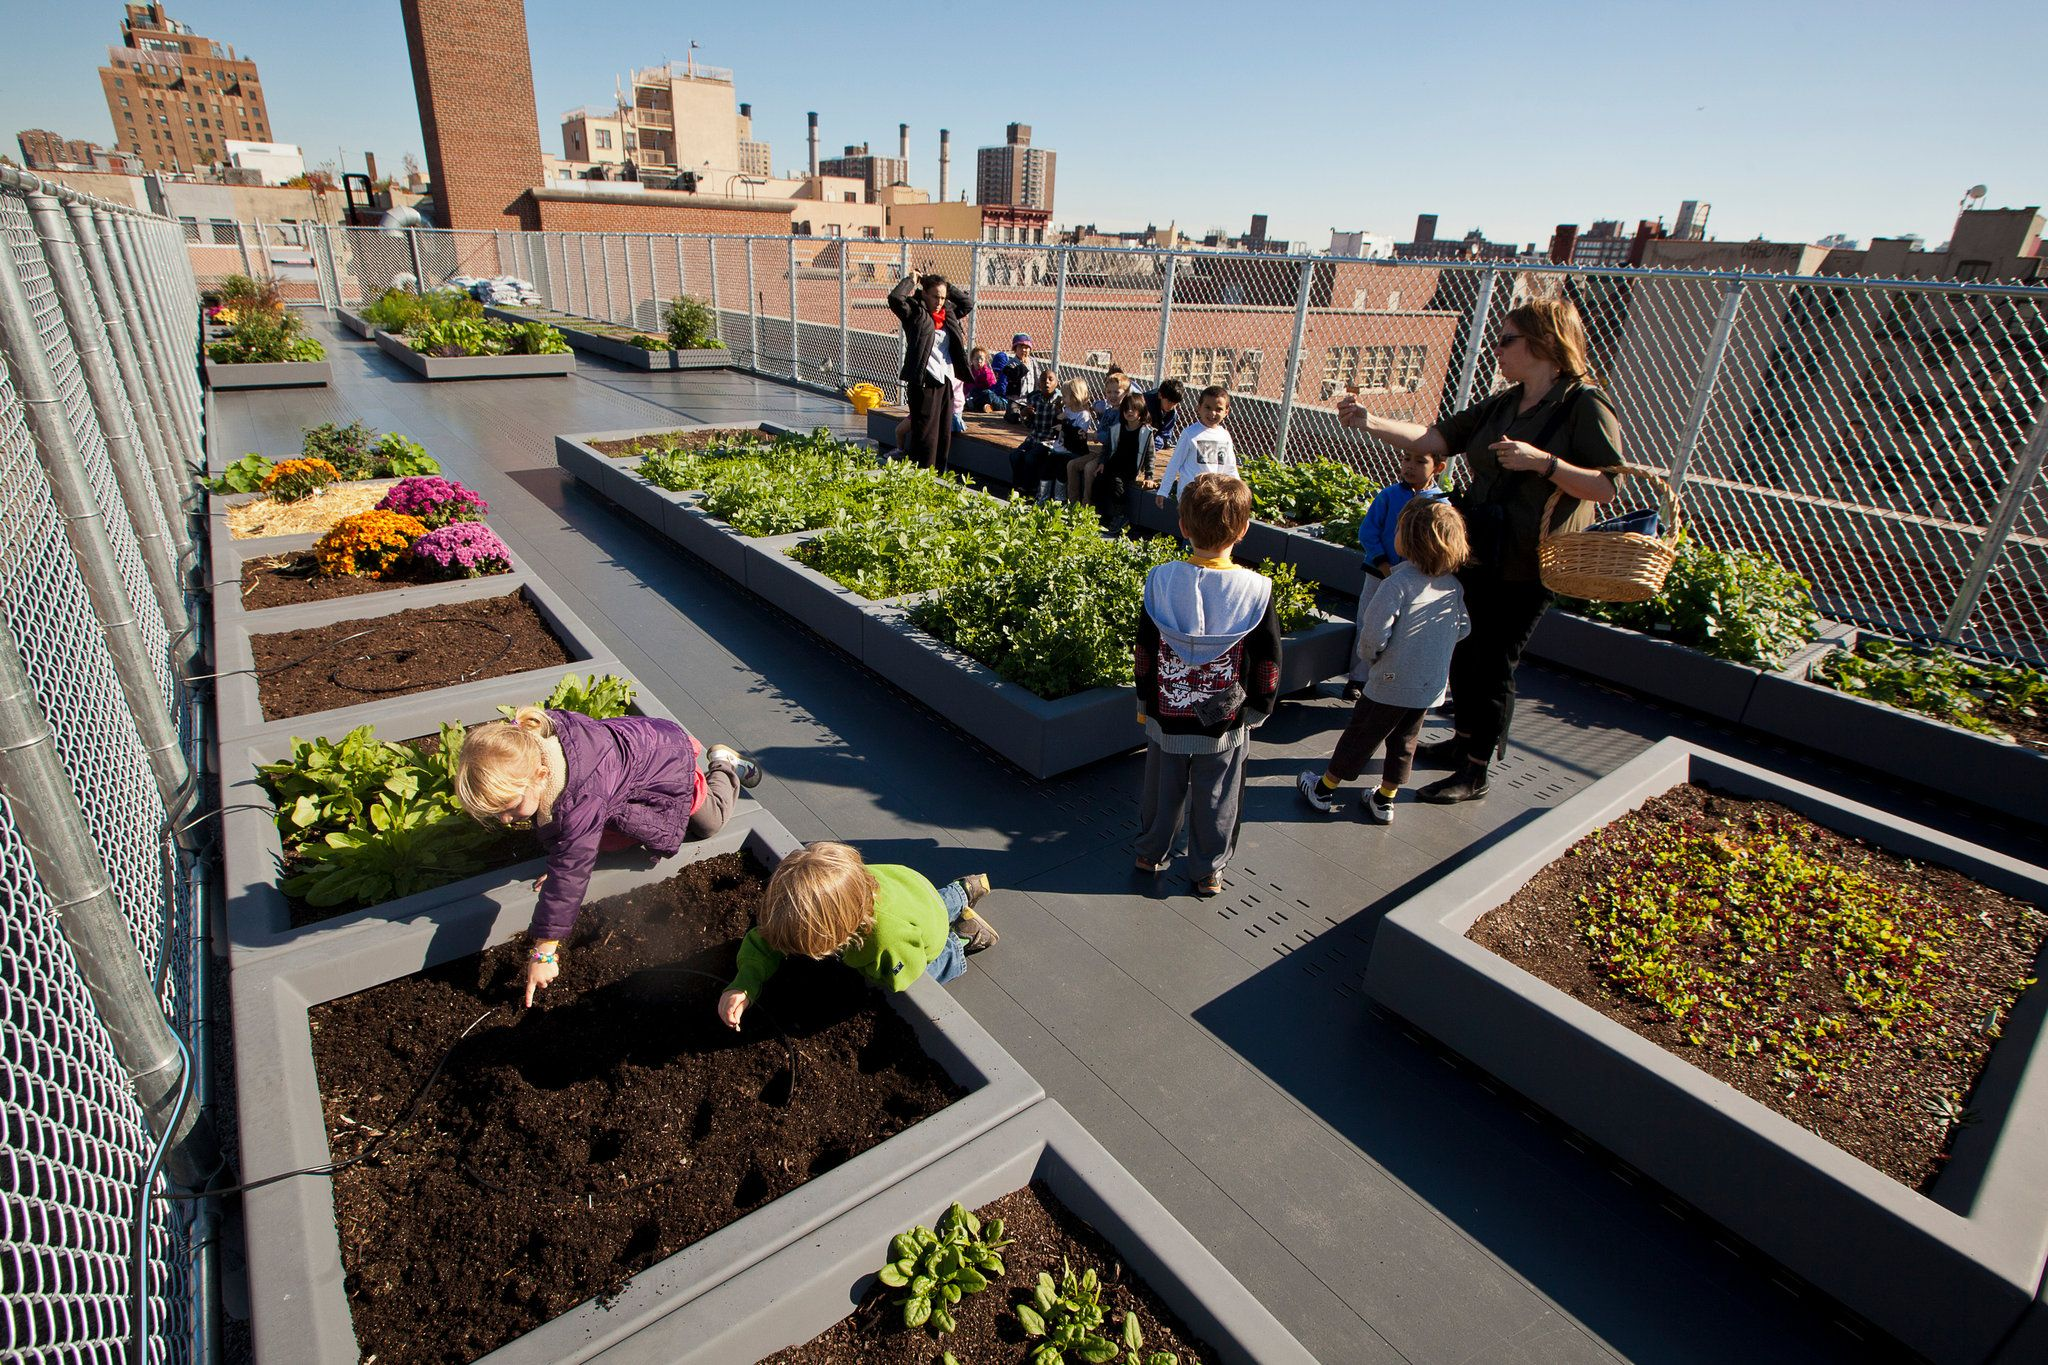 Teachers at schools with their own gardens are bringing